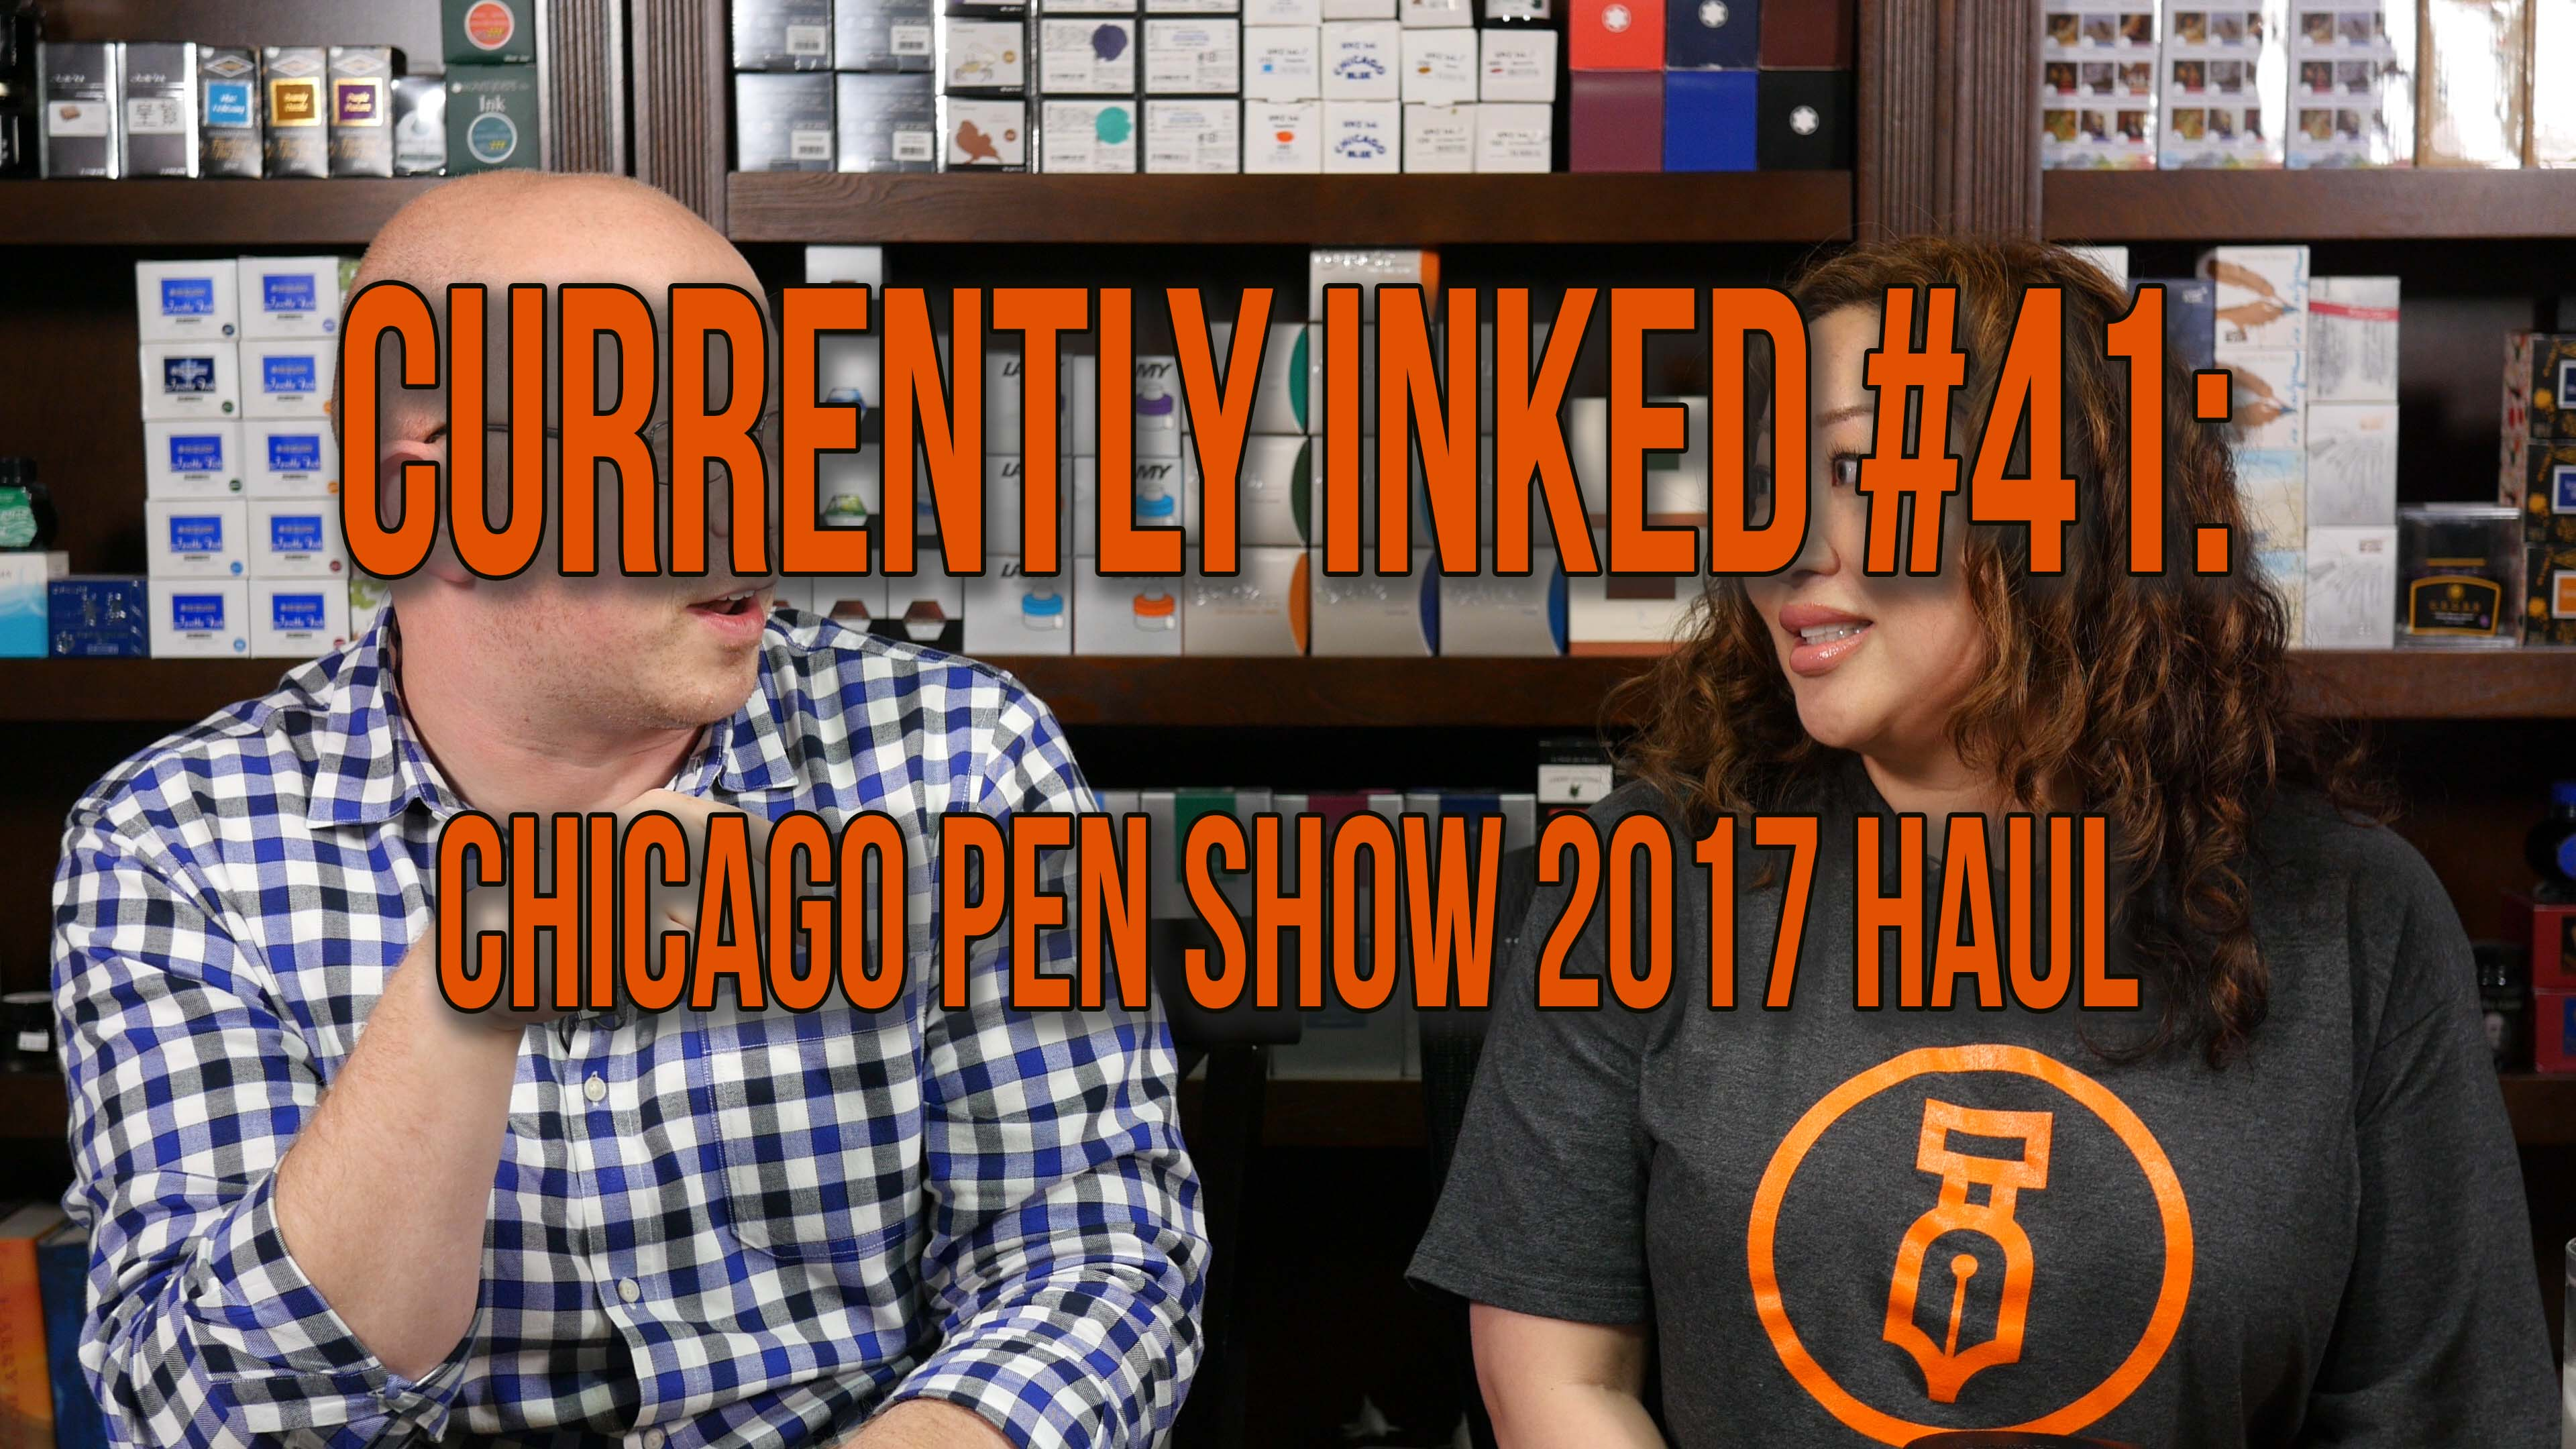 Currently Inked #41 | Chicago Pen Show 2017 Haul